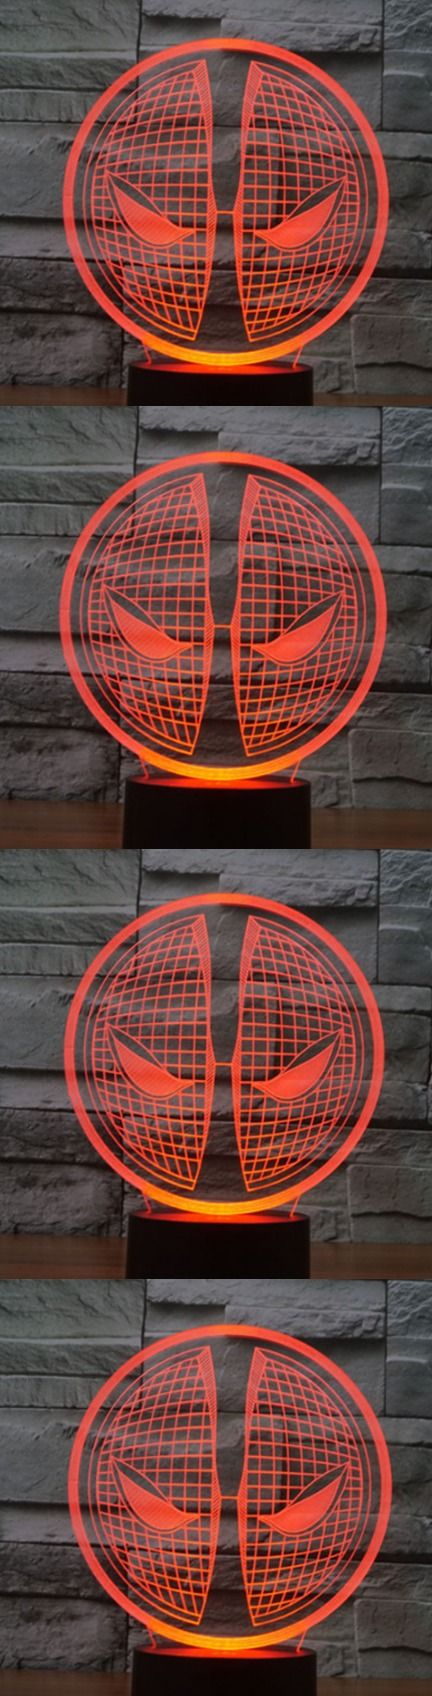 Deadpool 3D Led Table Lamp! Click The Image To Buy It Now or Tag Someone You Want To Buy This For. #deadpool